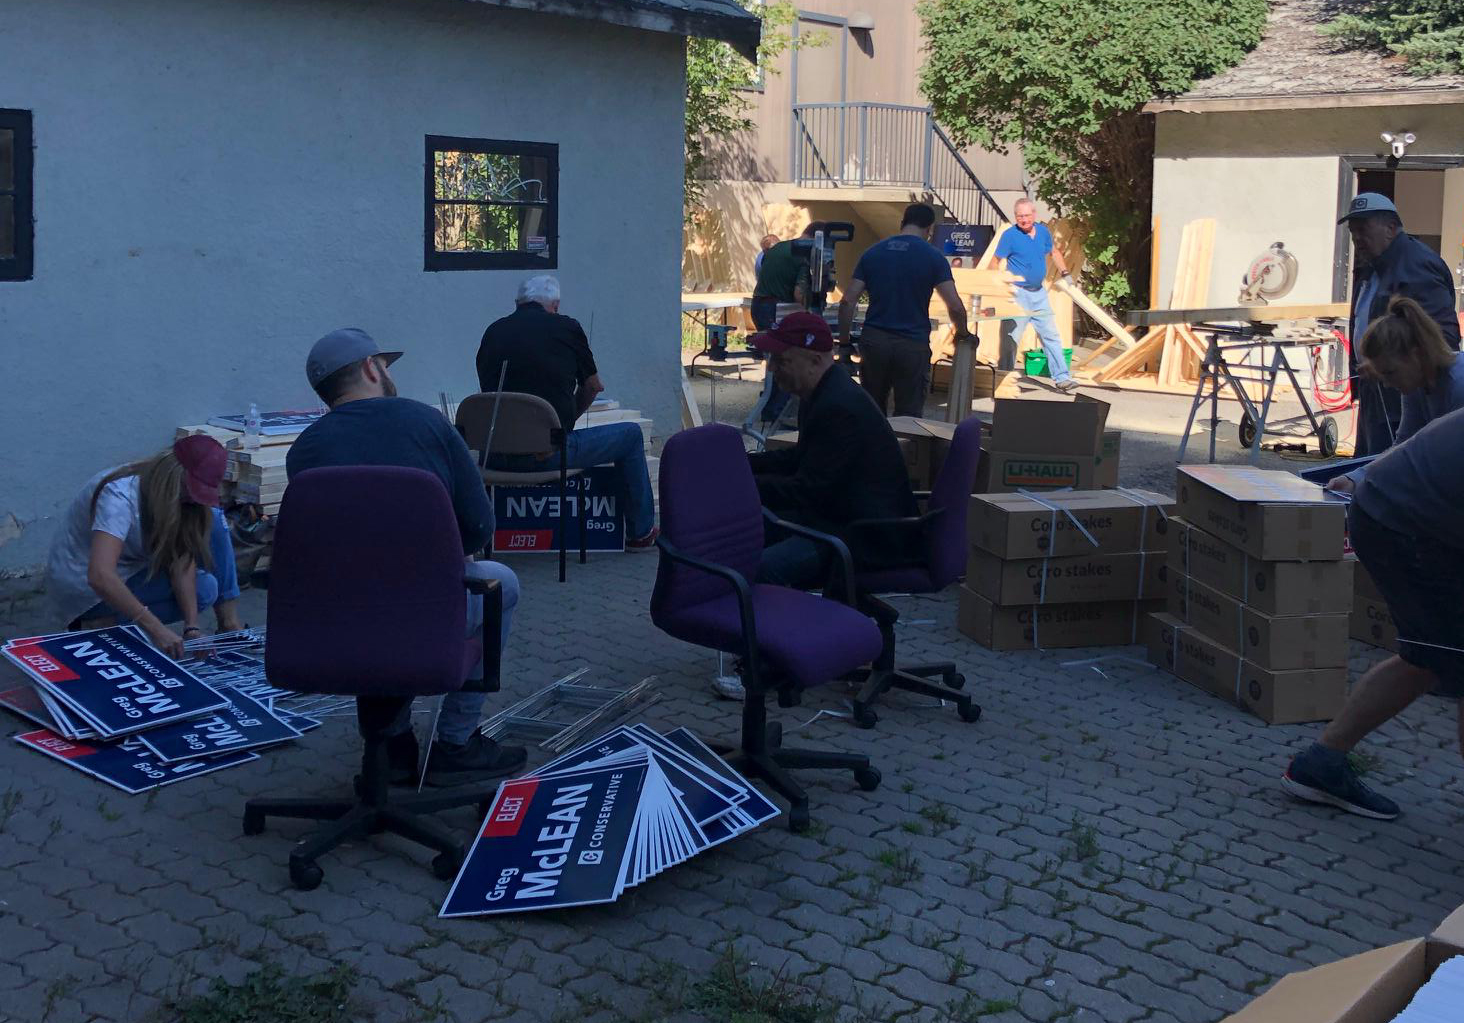 Out back of the campaign HQ, the sign crew is busy assembling the lawn signs for delivery and pickup (Sat Sept 7).